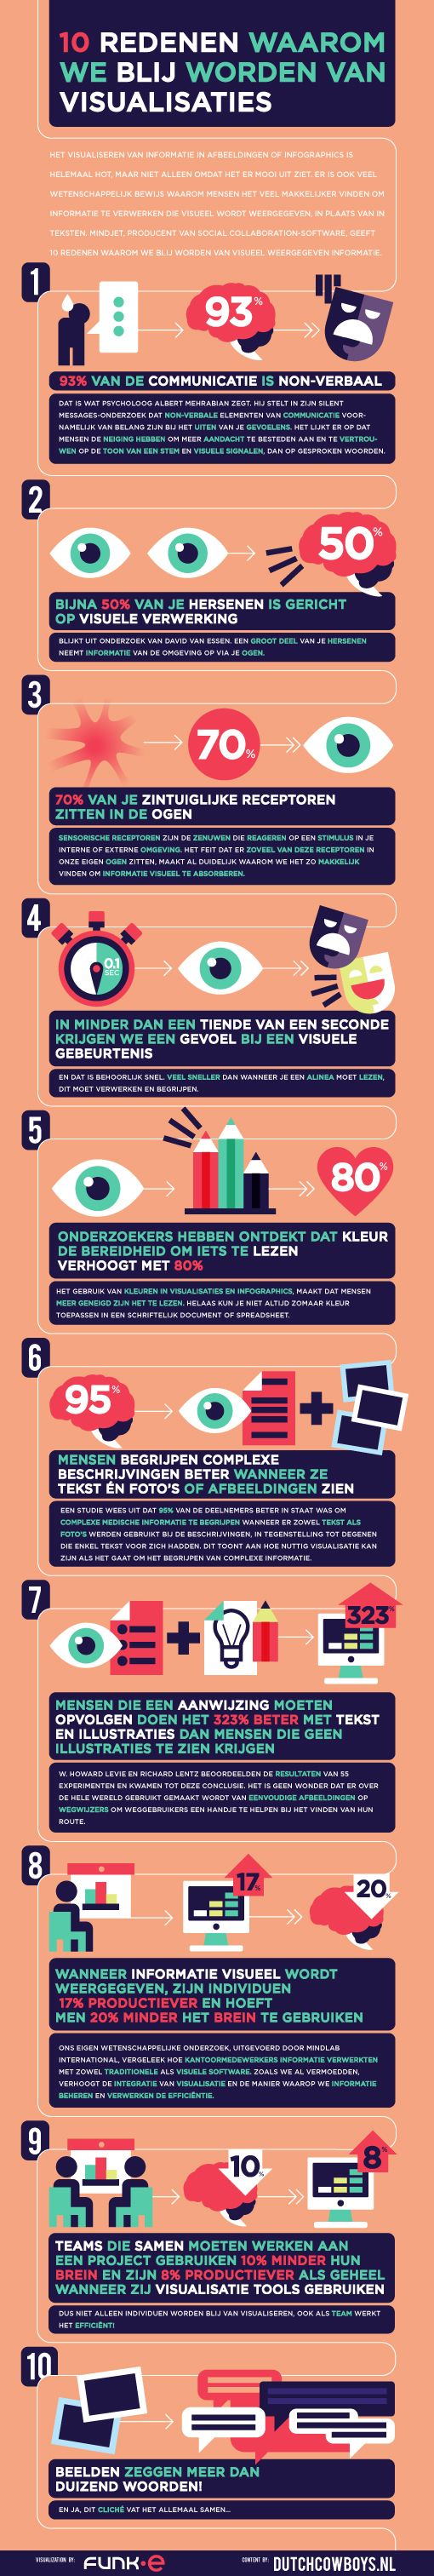 We have made a sweet #infographic in collaboration with the #DutchCowboys! Check out here why visuals are so awesome!